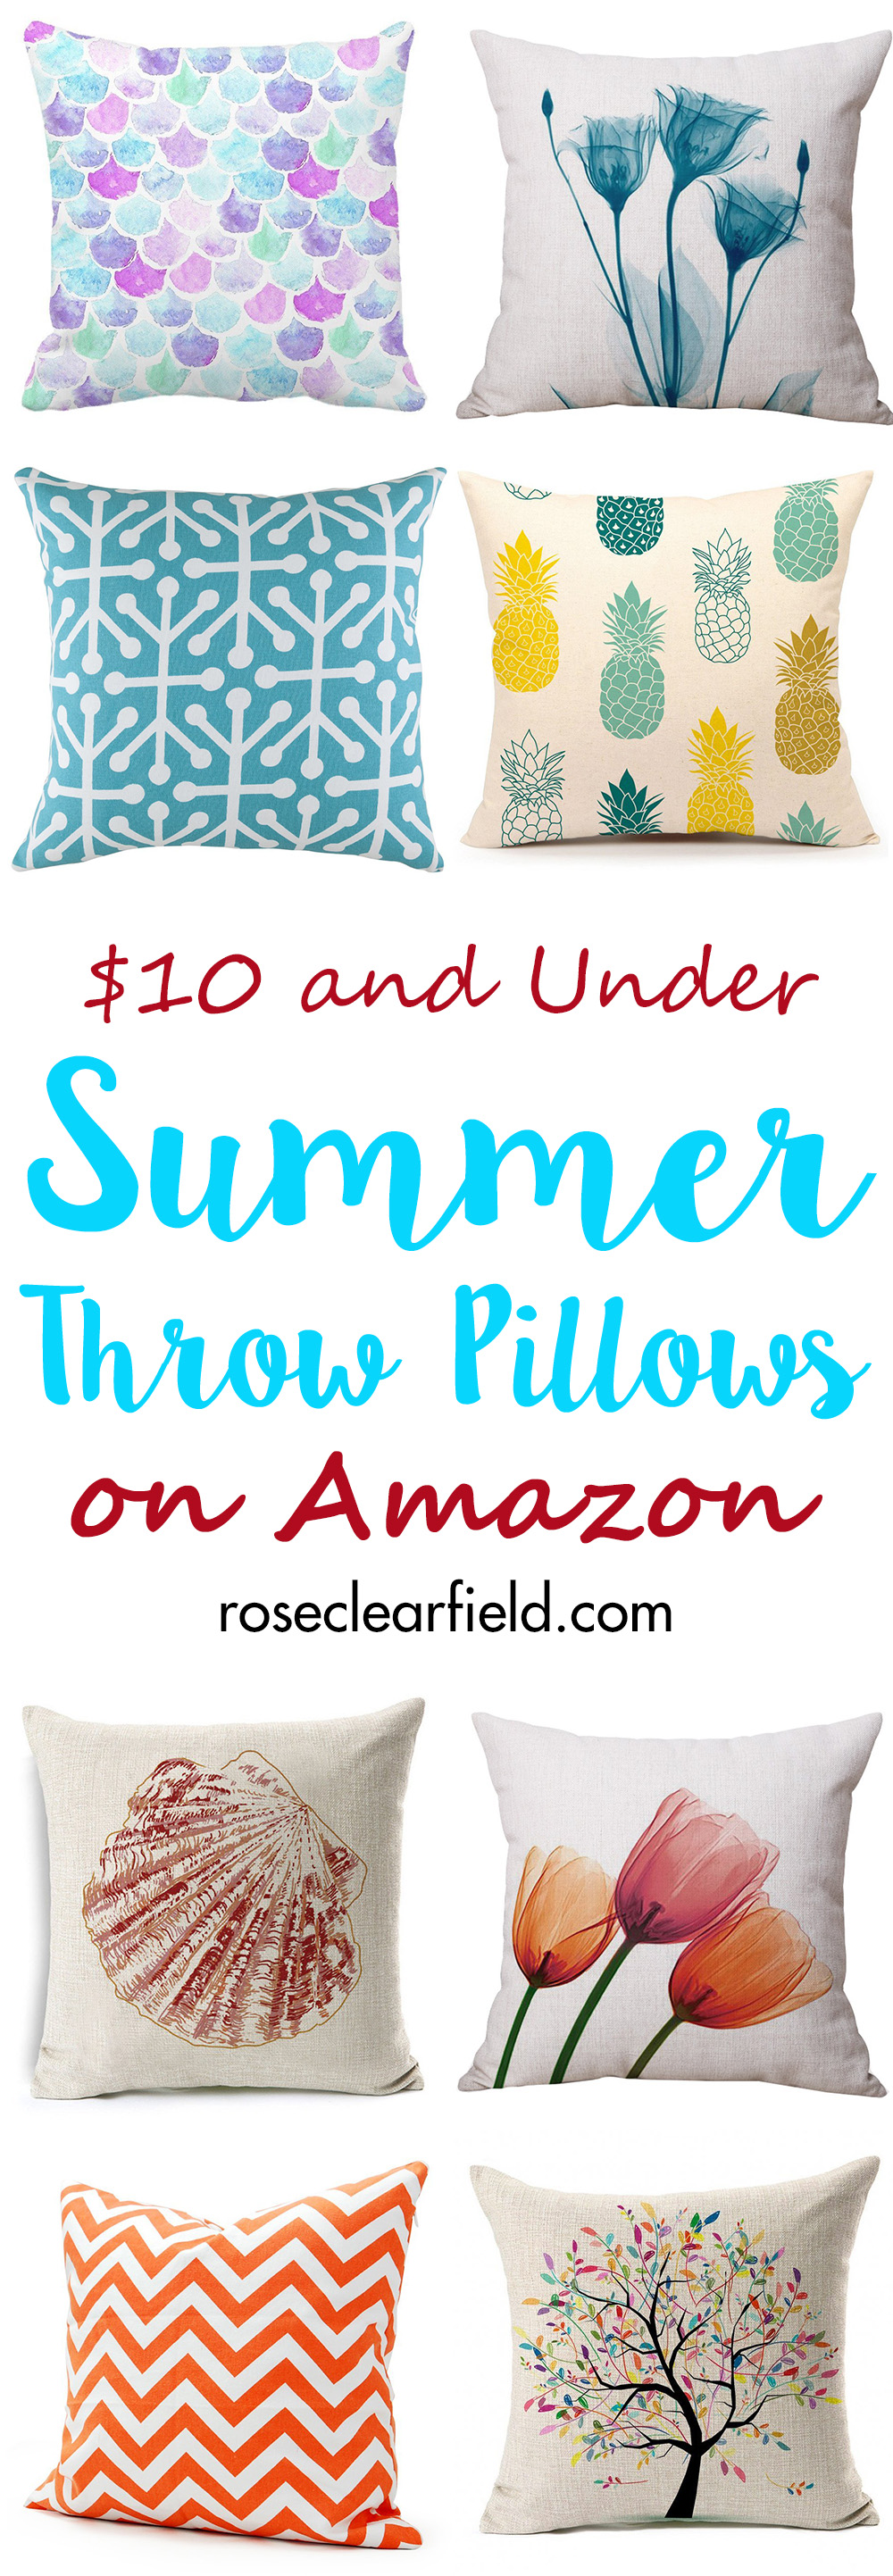 $10 and Under Summer Throw Pillows on Amazon | http://www.roseclearfield.com